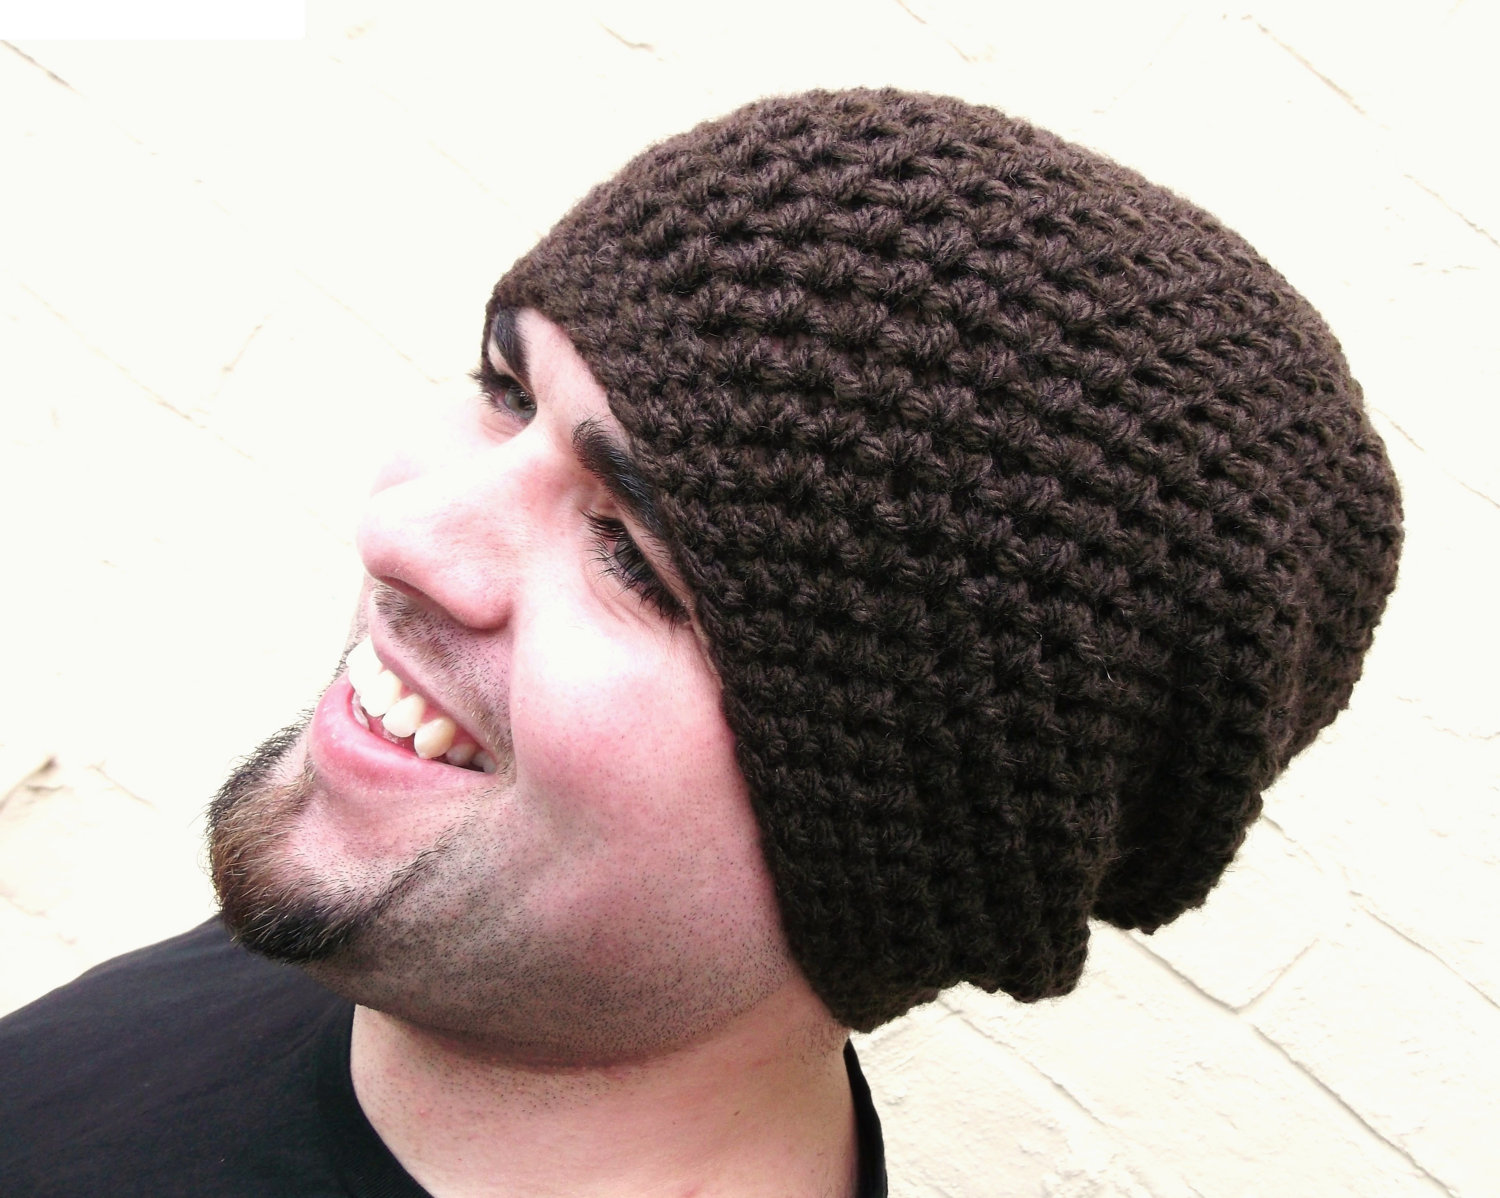 Crochet Pattern Hat Beanie : Beanies for Men Beanie Ville